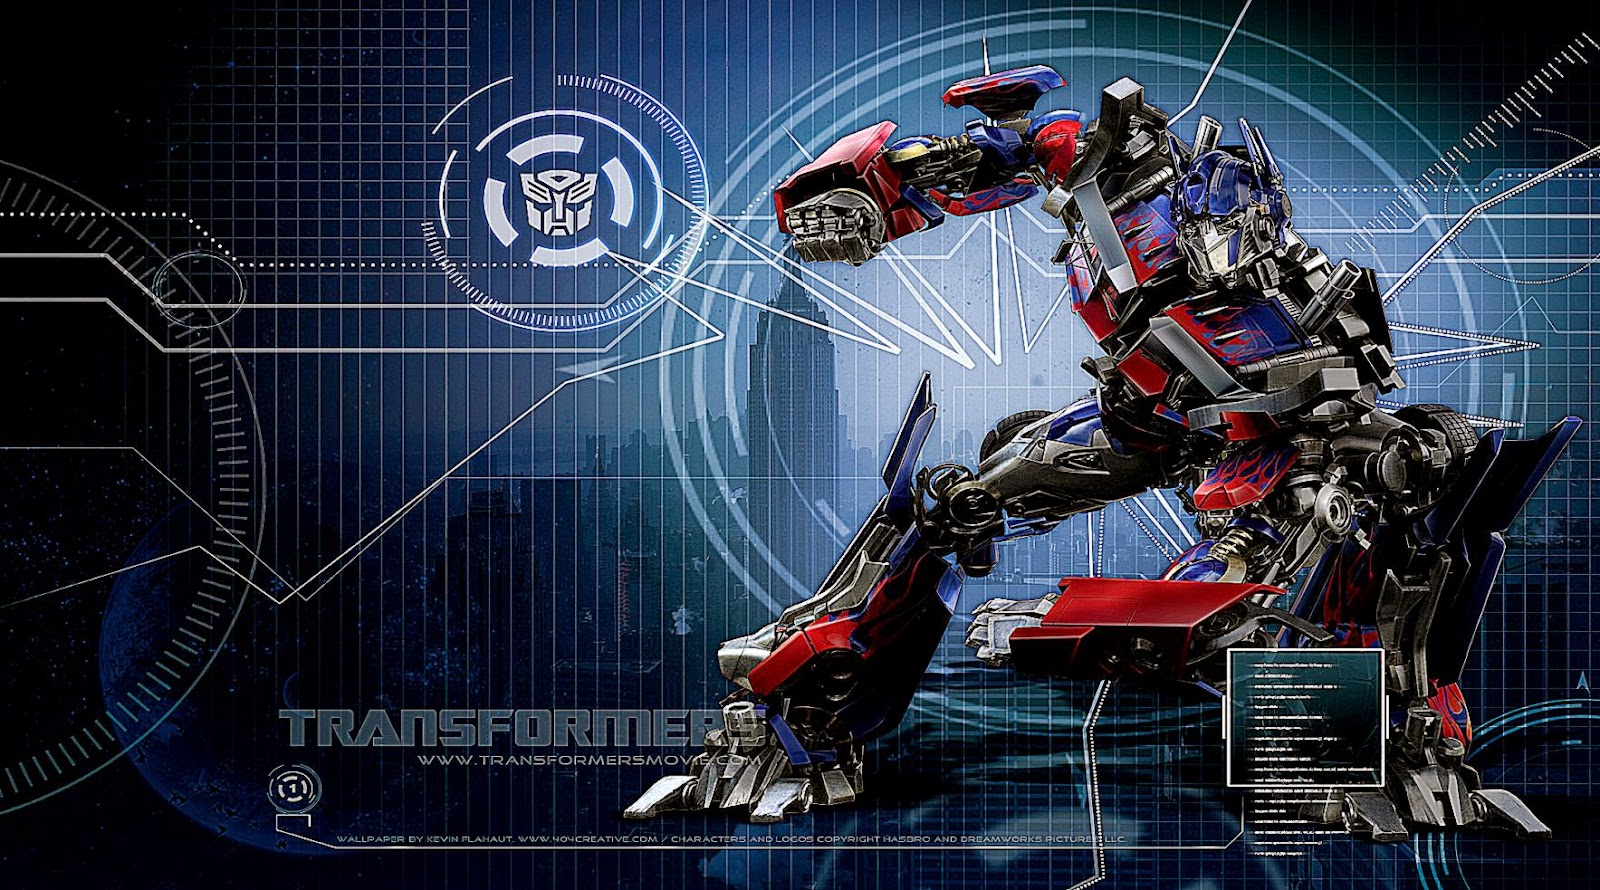 Transformers wallpapers cool hd wallpapers - Transformers desktop backgrounds ...